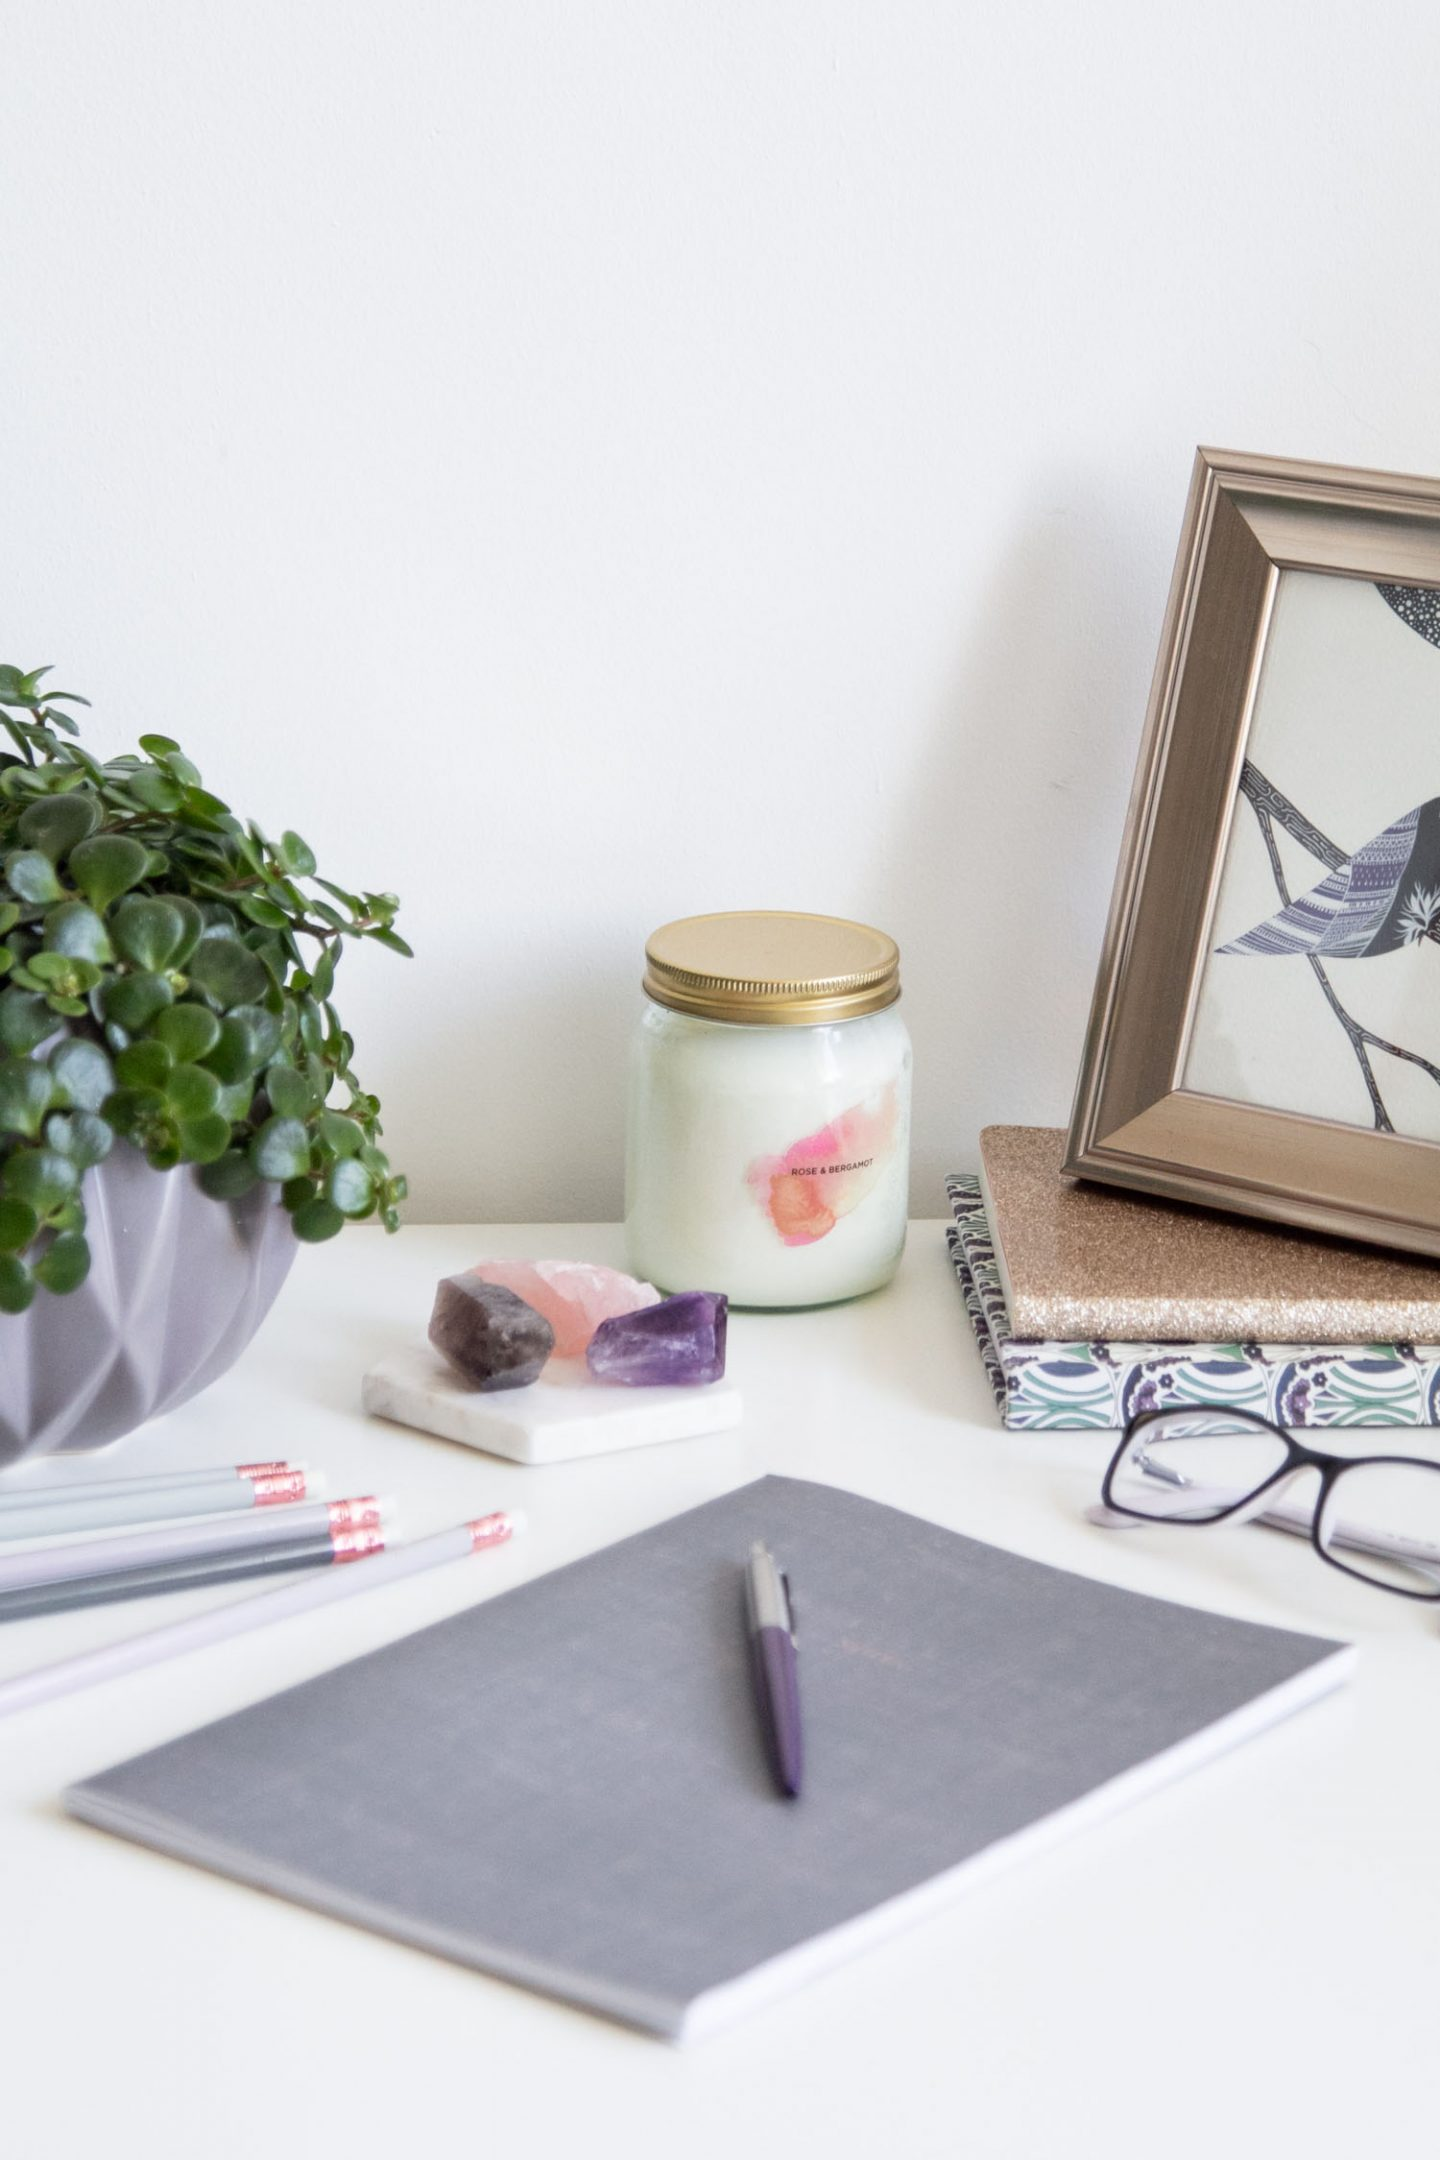 desk scene with notebook, plant, pen, candle, painting, glasses